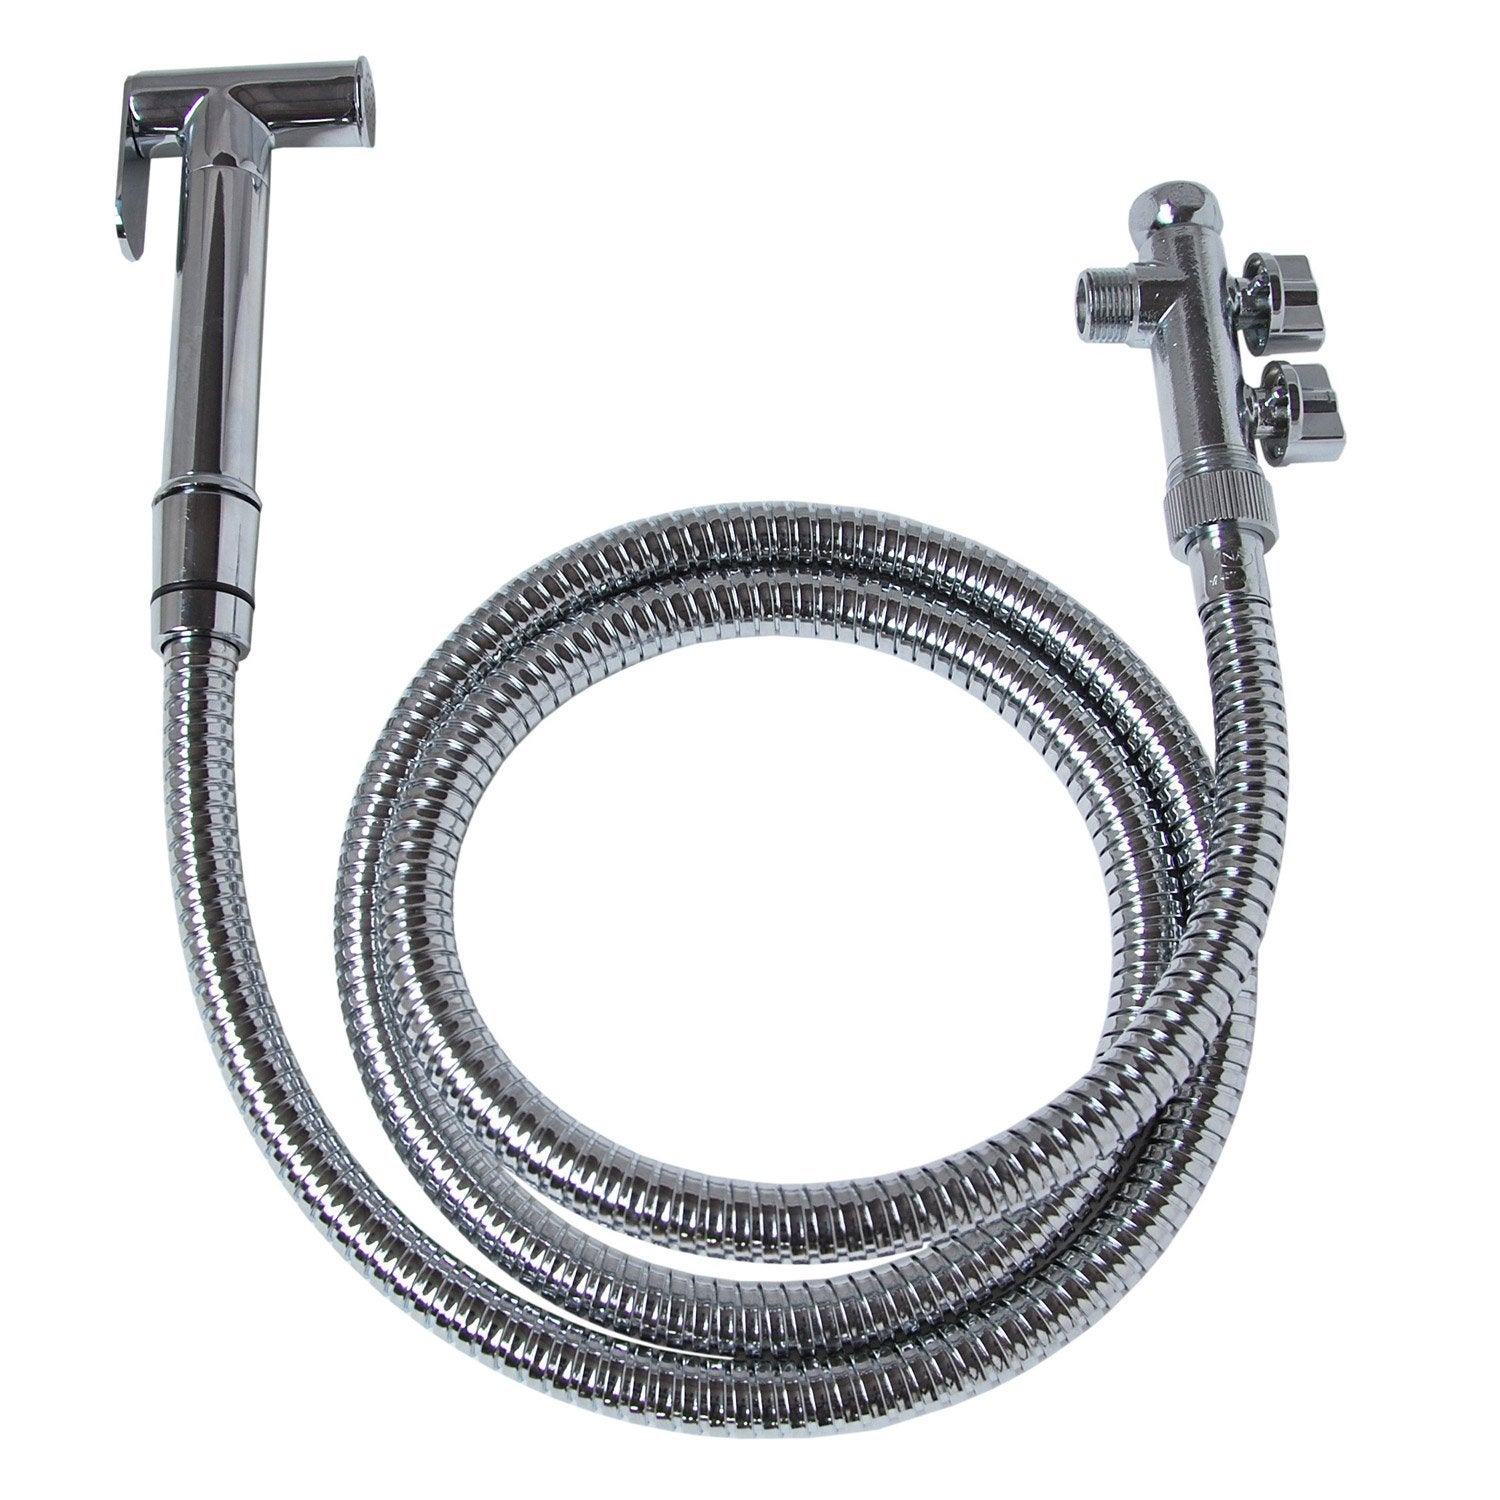 Kit hygiene wc 12 x 17 15 x 21 mm leroy merlin for Wc bidet leroy merlin